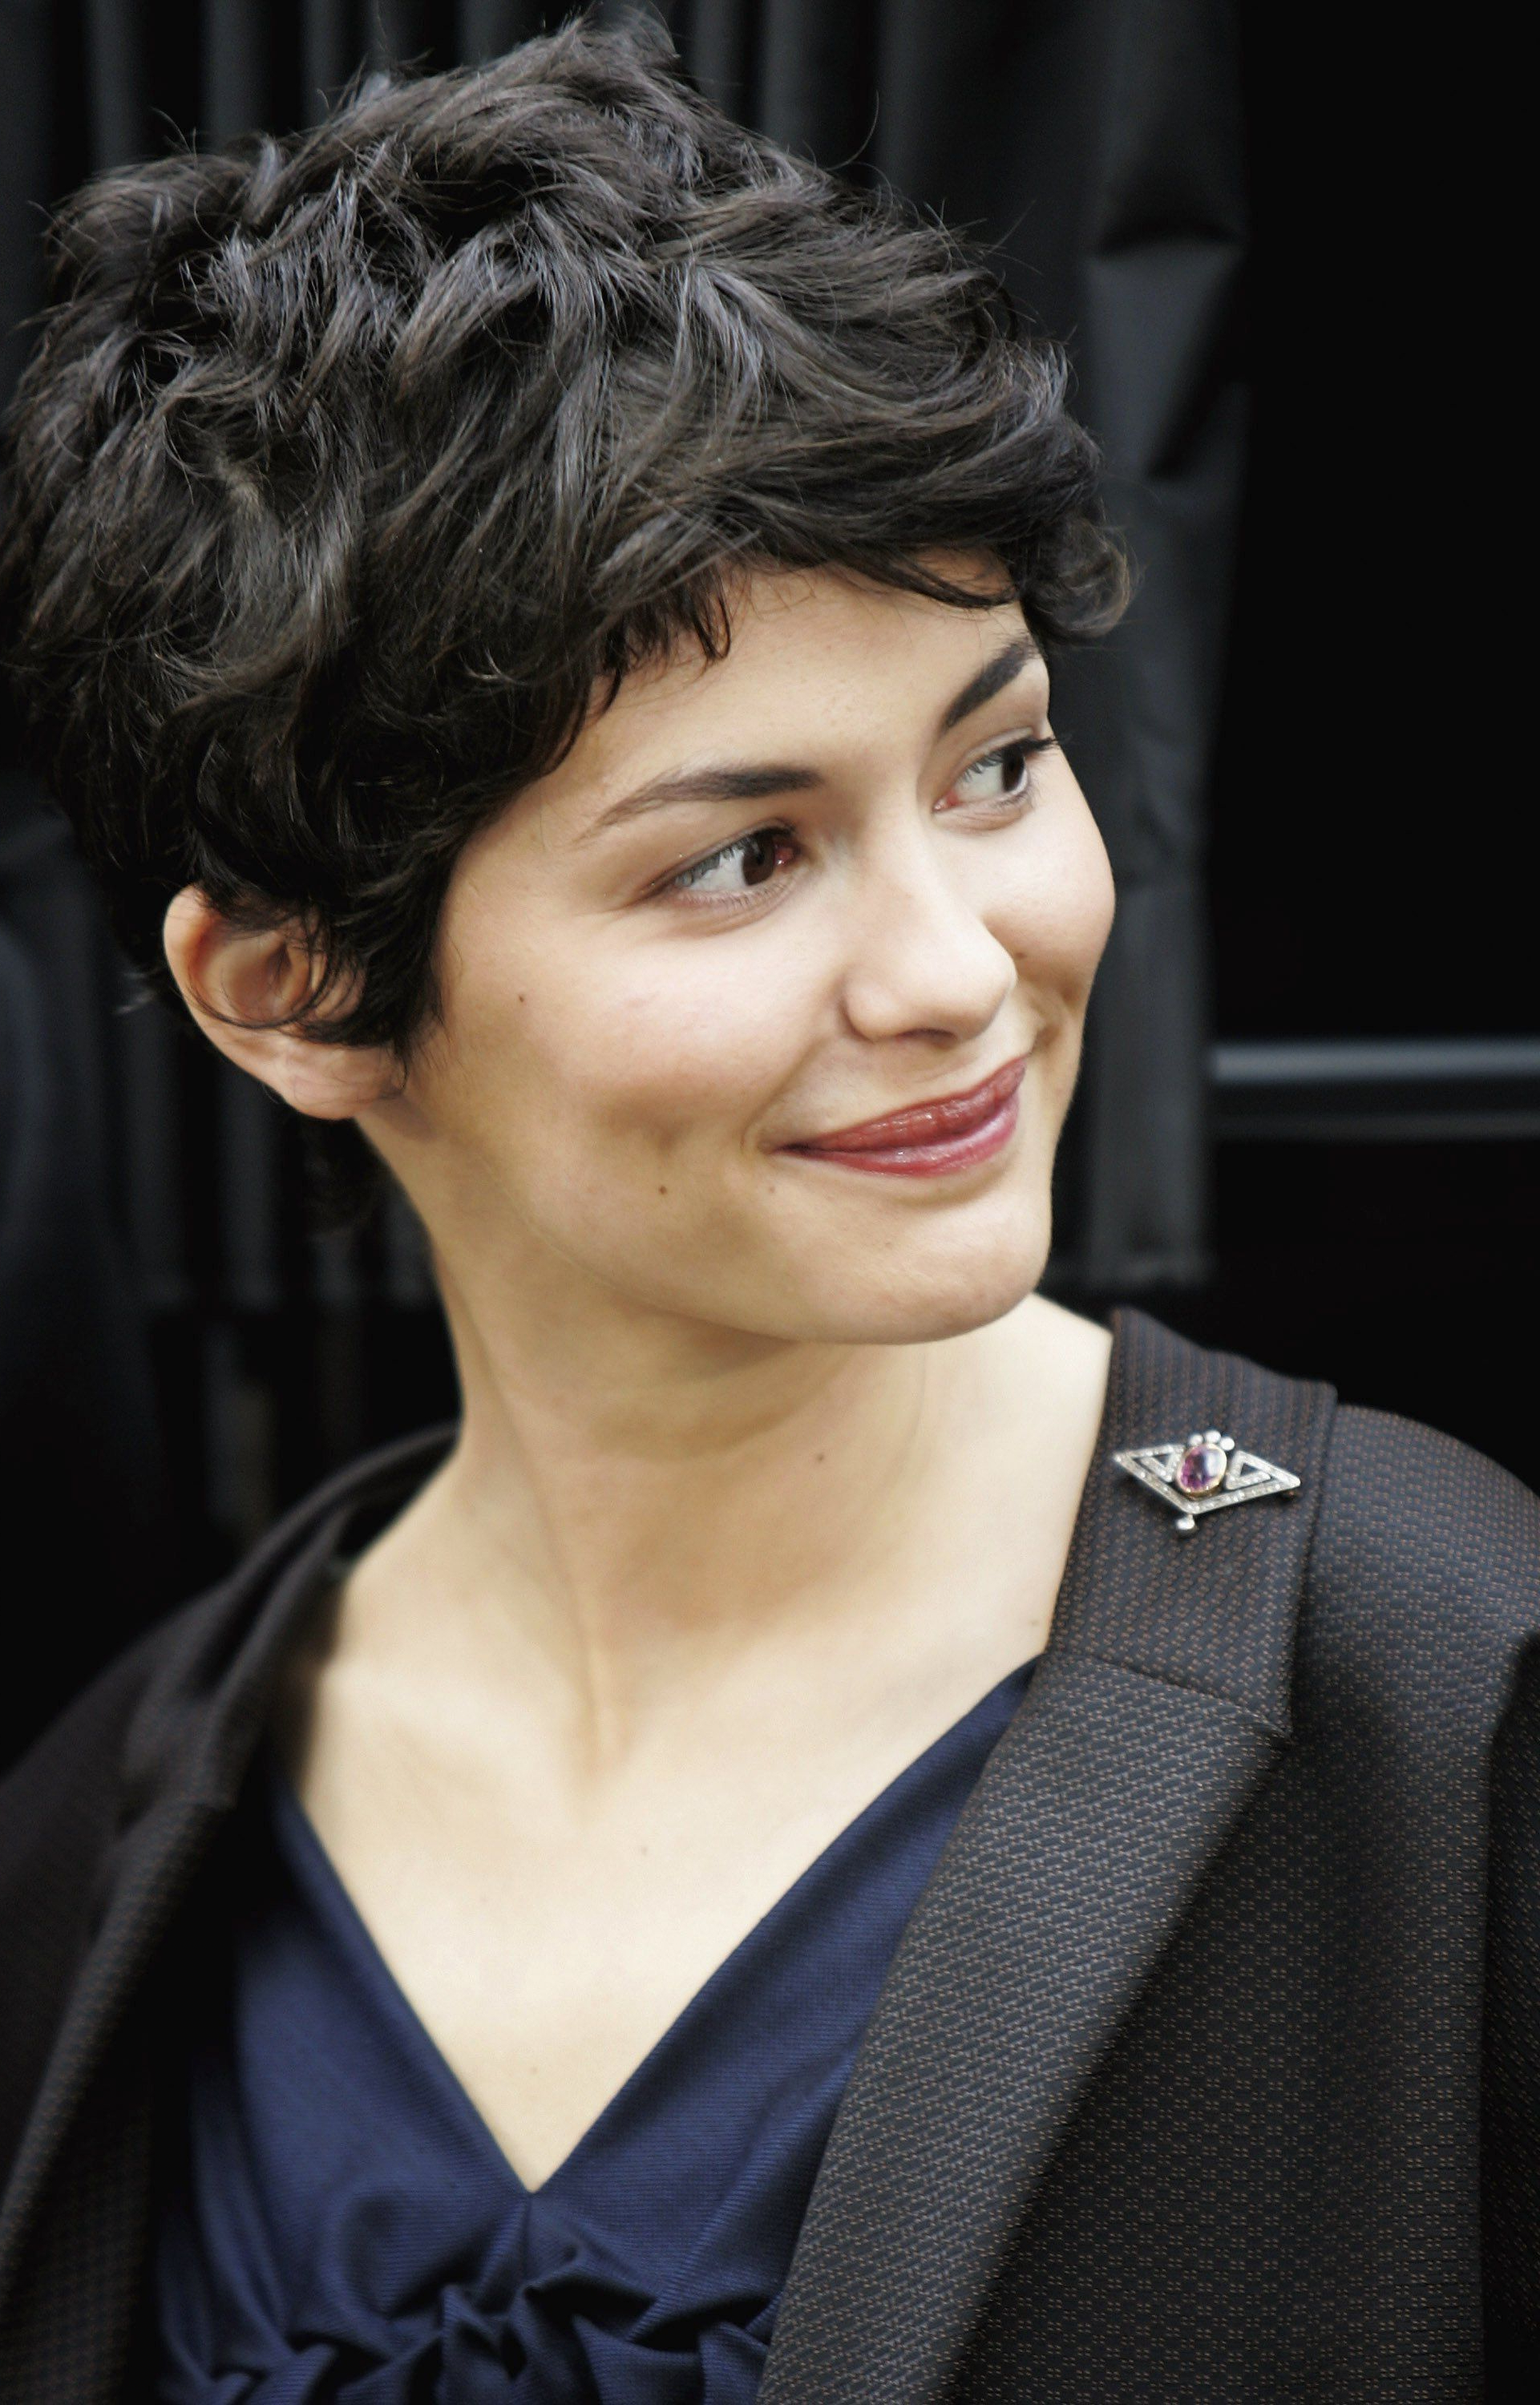 Audrey Tautou (View 12 of 20)